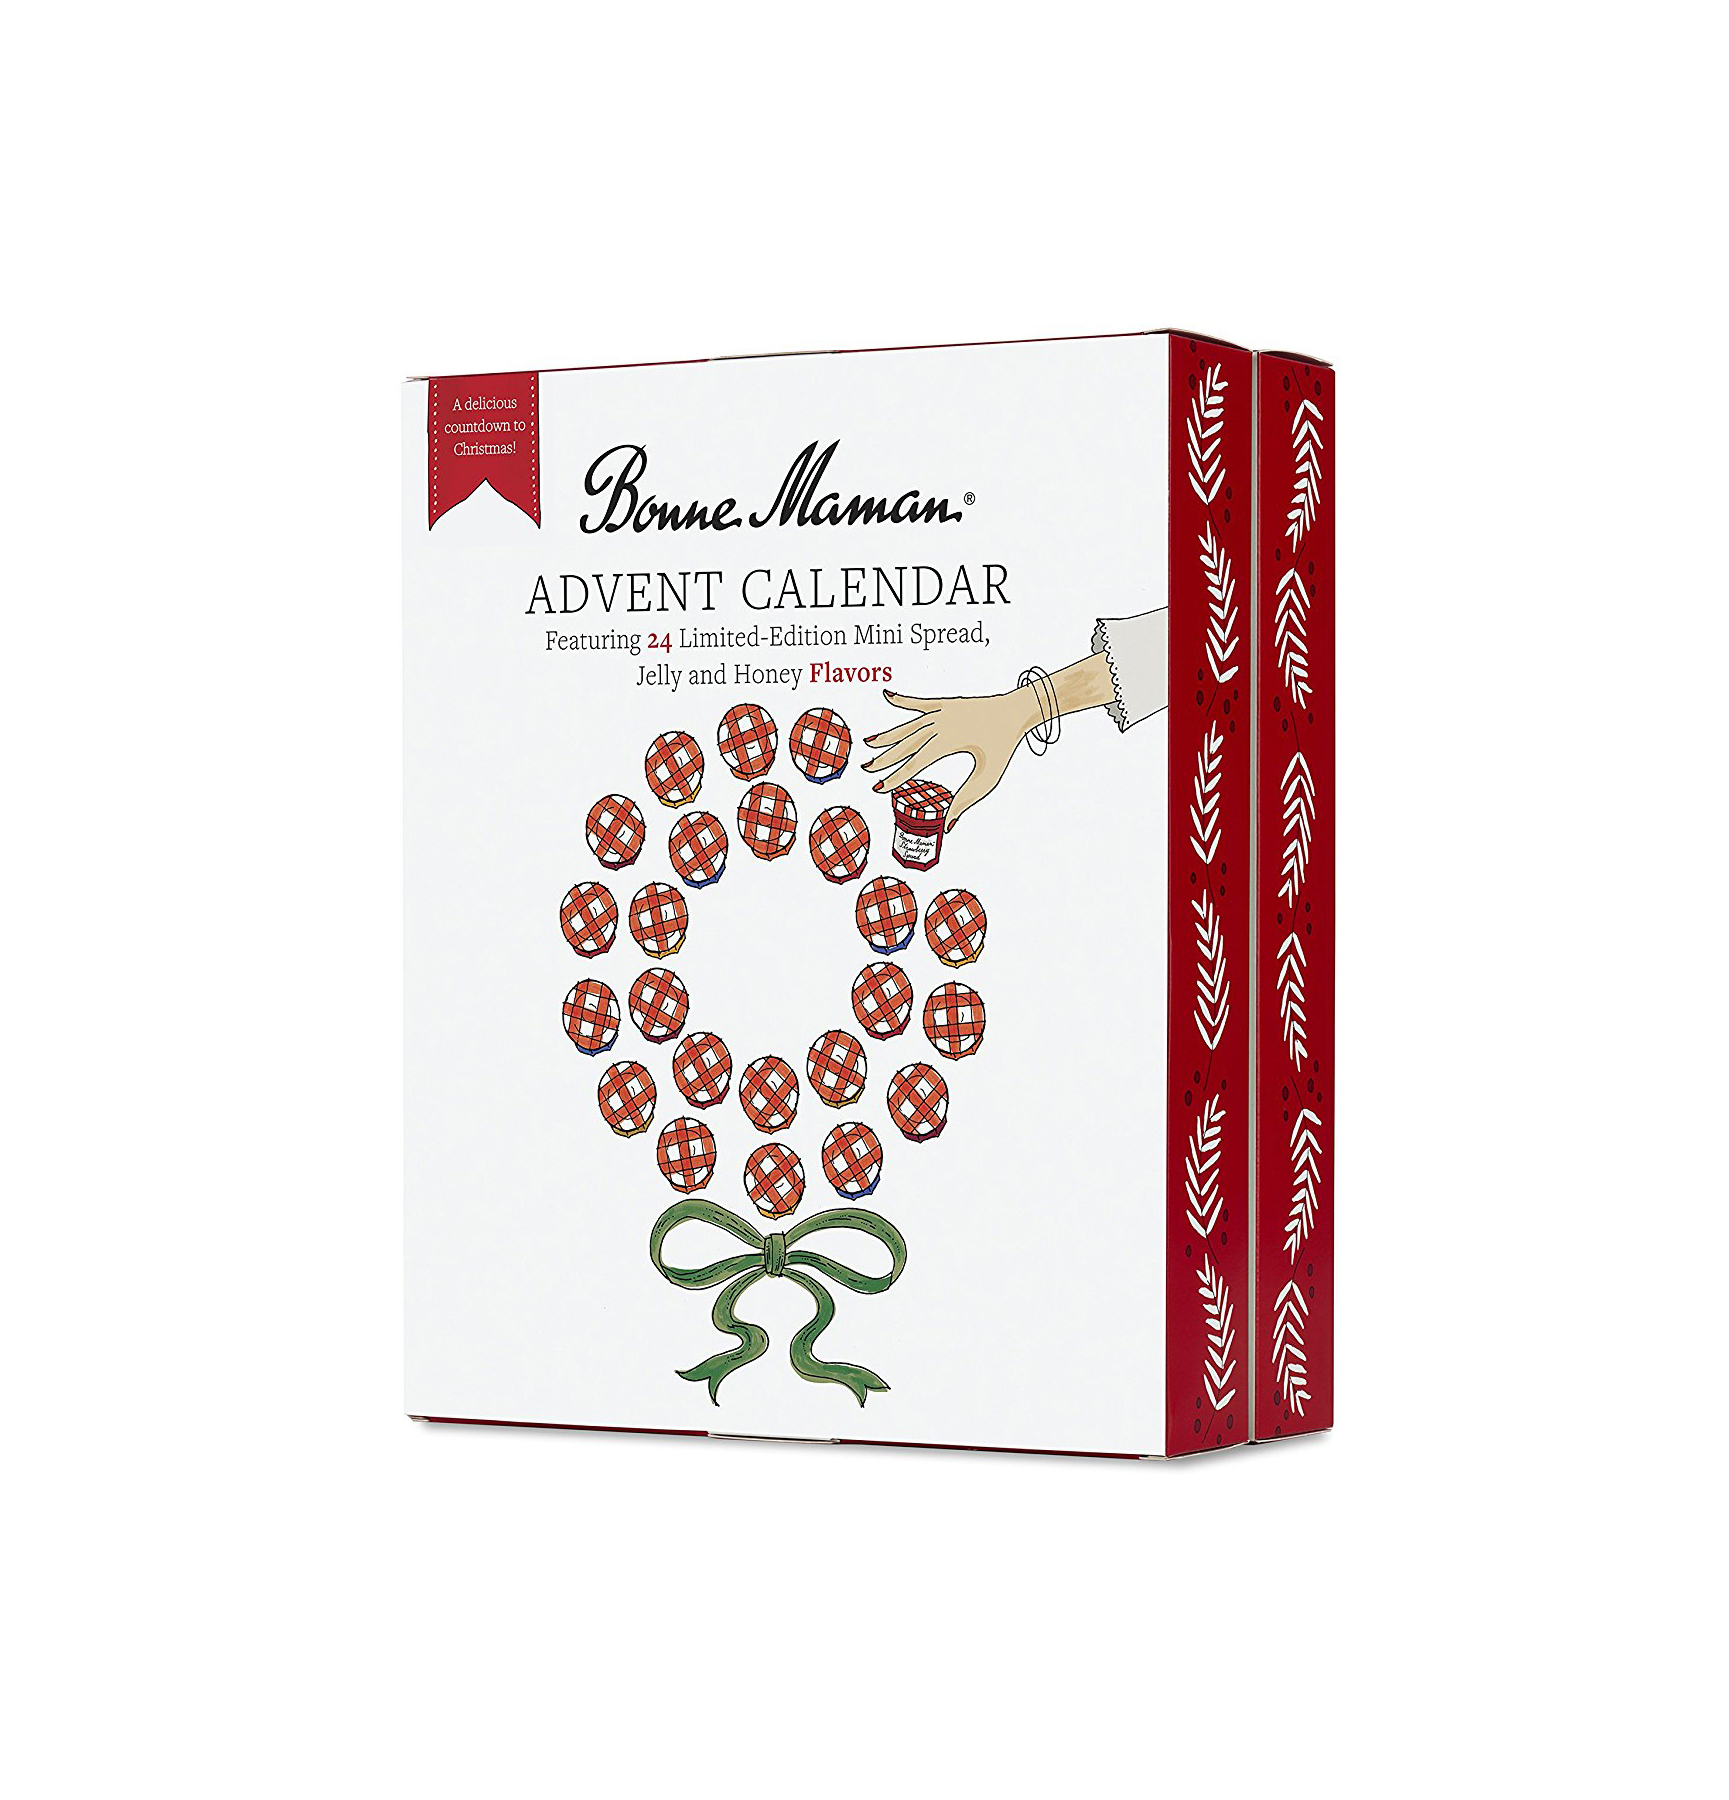 Limited-Edition Advent calendar